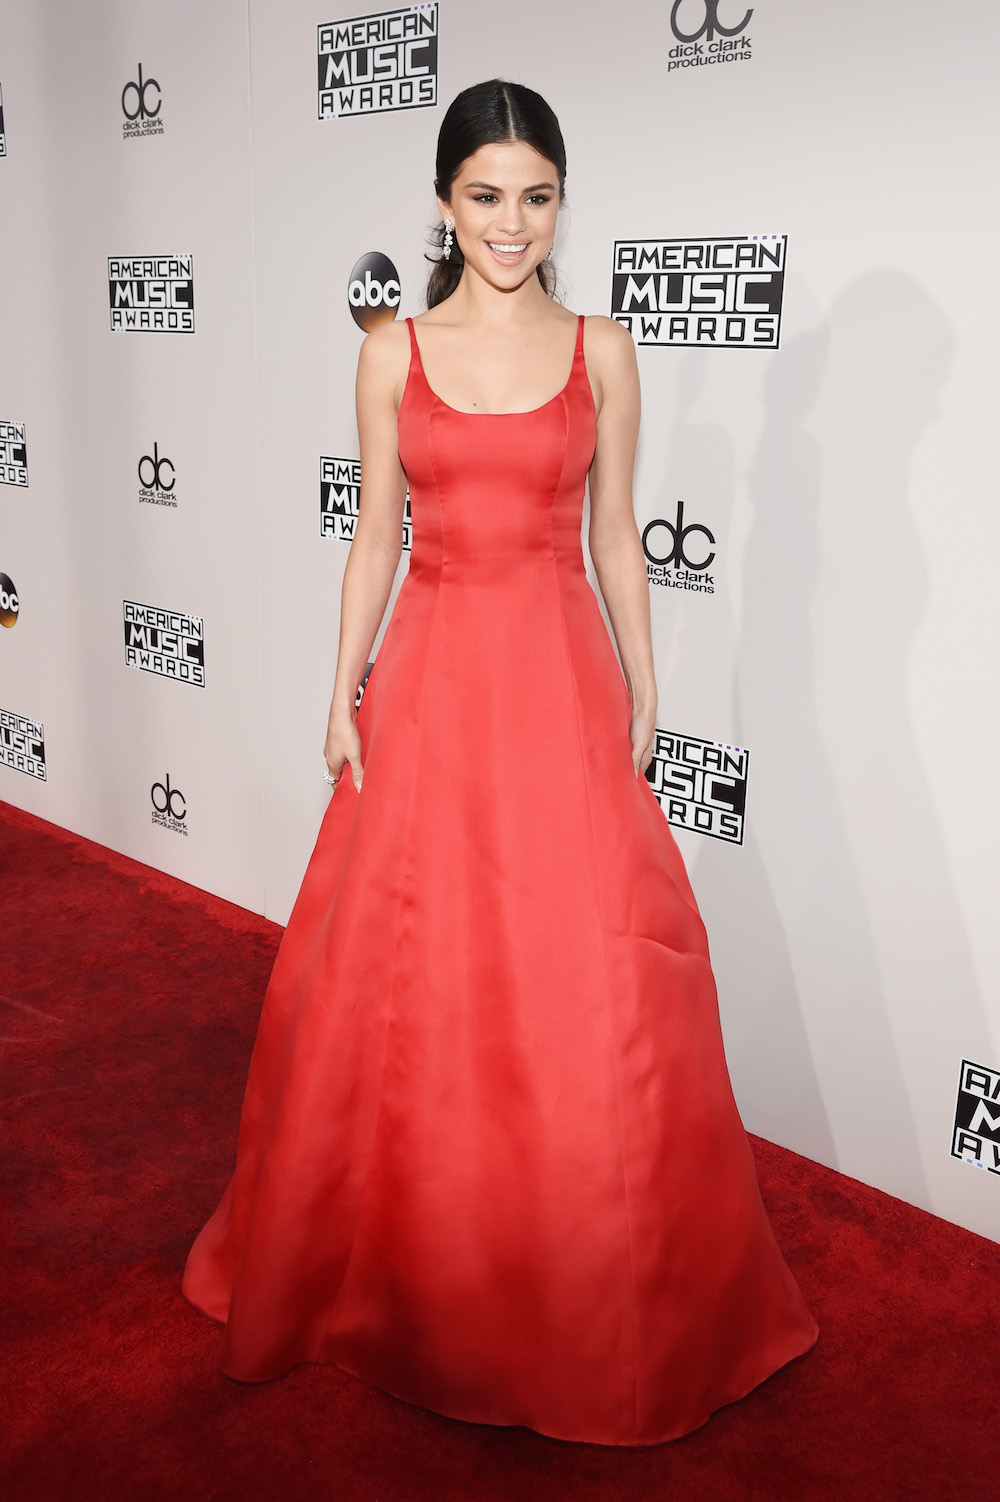 LOS ANGELES, CA - NOVEMBER 20:  Singer Selena Gomez attends the 2016 American Music Awards at Microsoft Theater on November 20, 2016 in Los Angeles, California.  (Photo by Frazer Harrison/AMA2016/Getty Images for dcp)